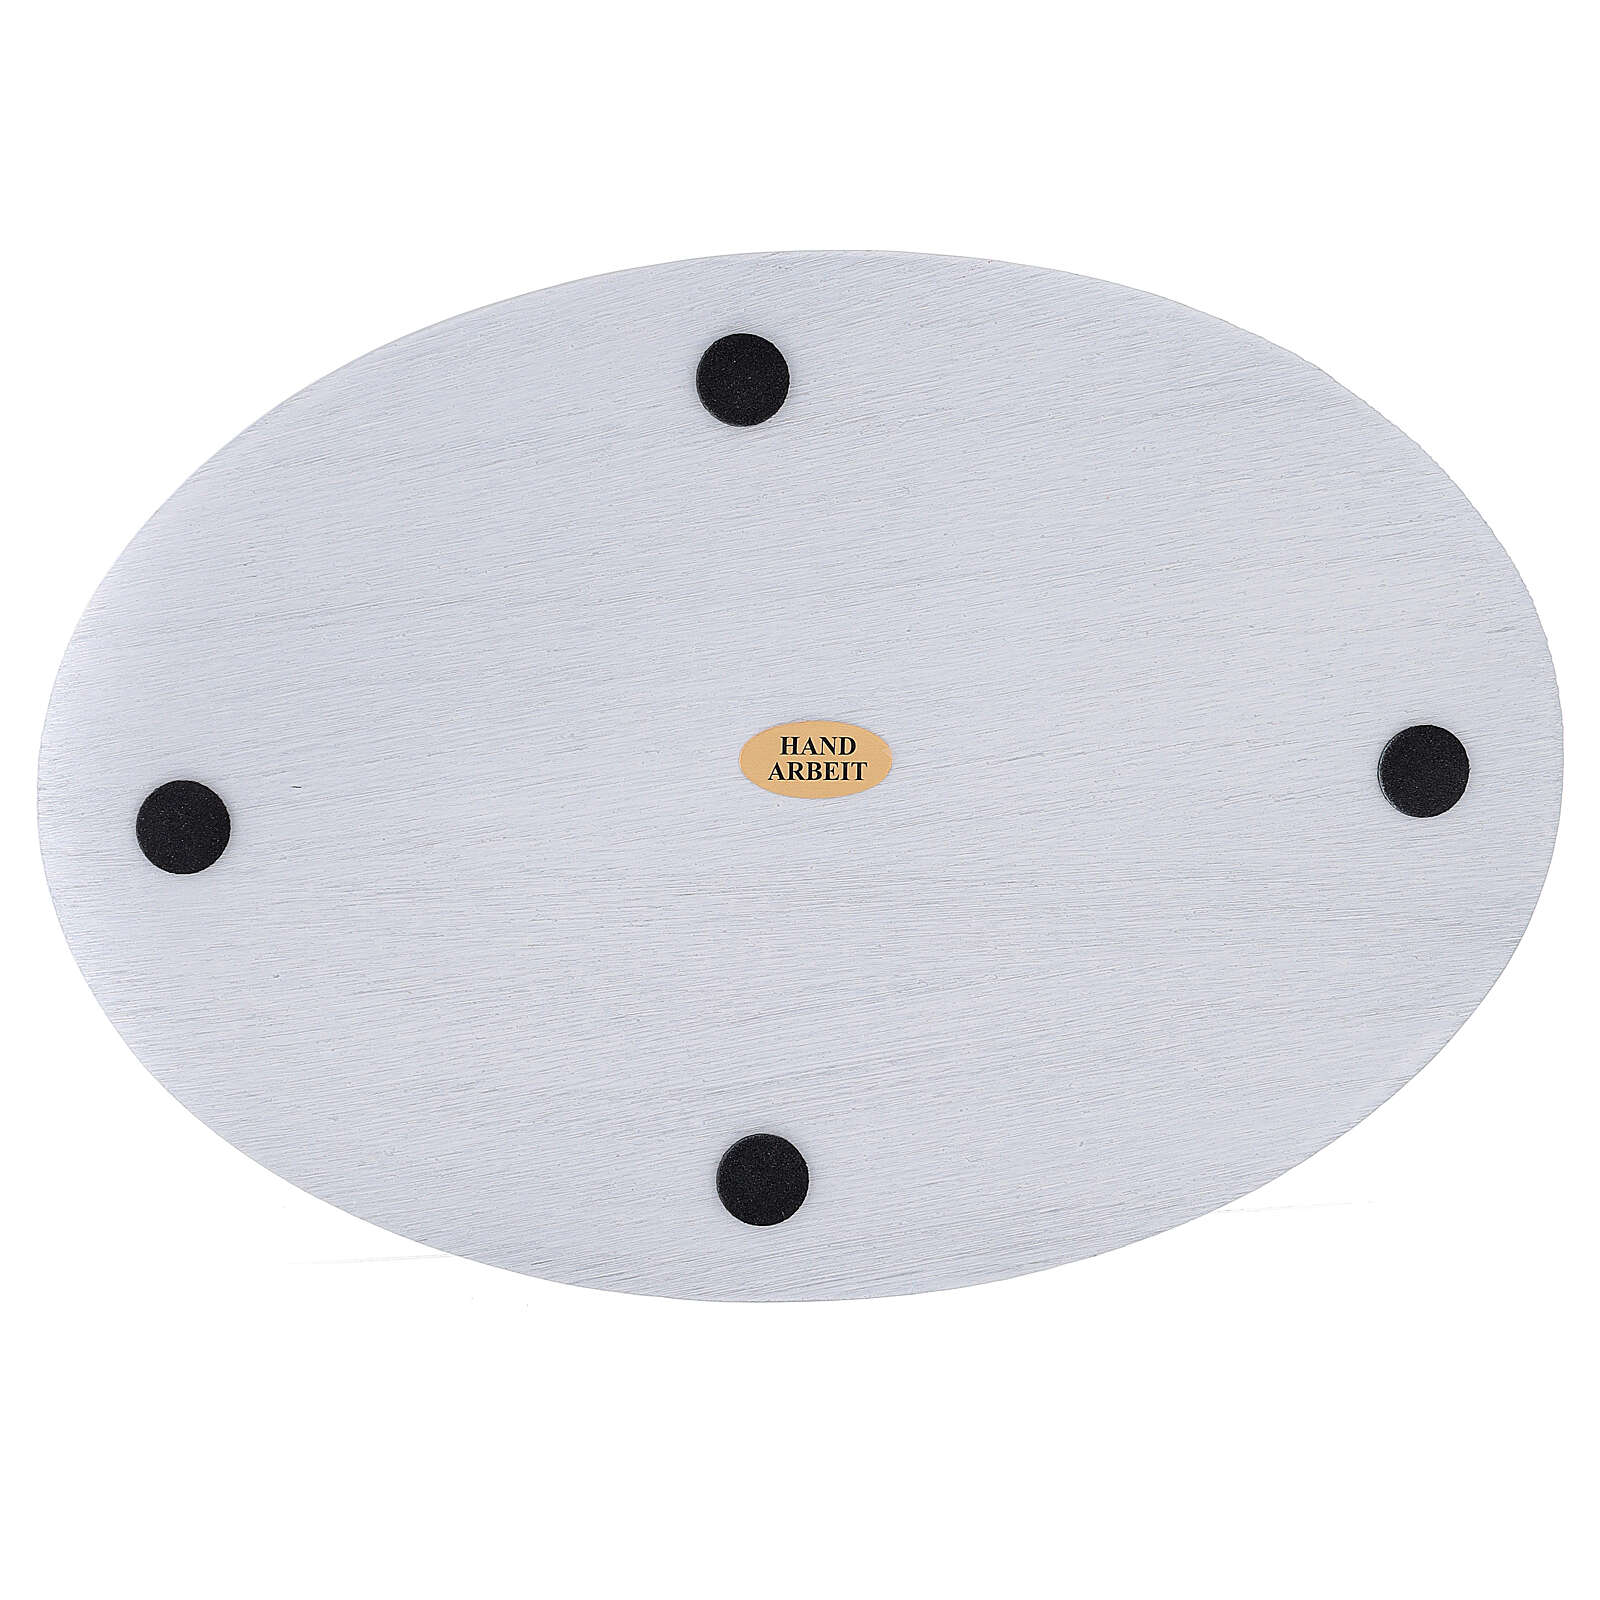 Oval white aluminium candle holder plate 8x5 1/2 in 3